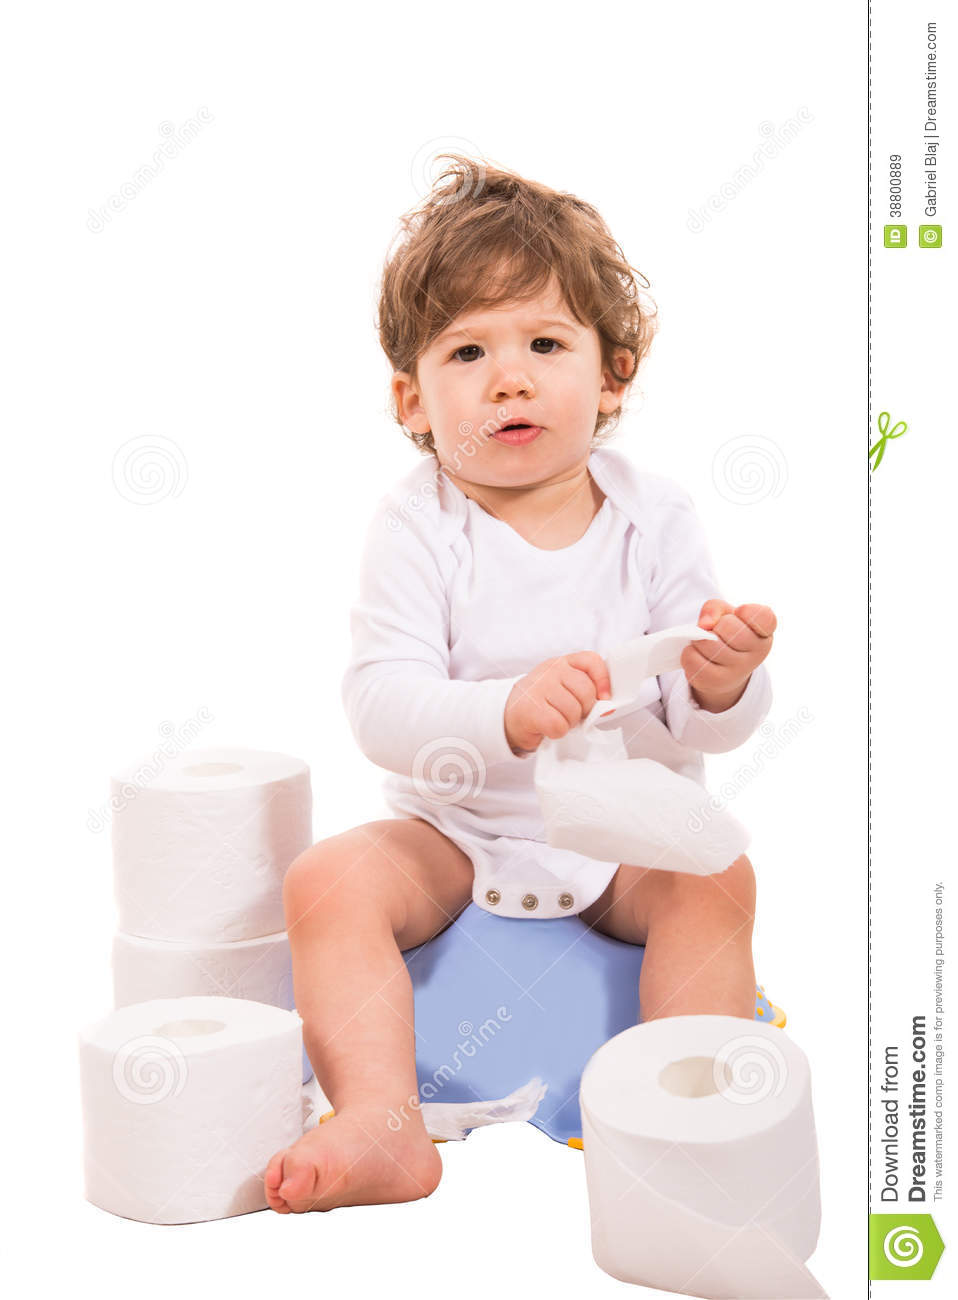 Upset baby boy sitting on potty with rolls of toilet paper around him.